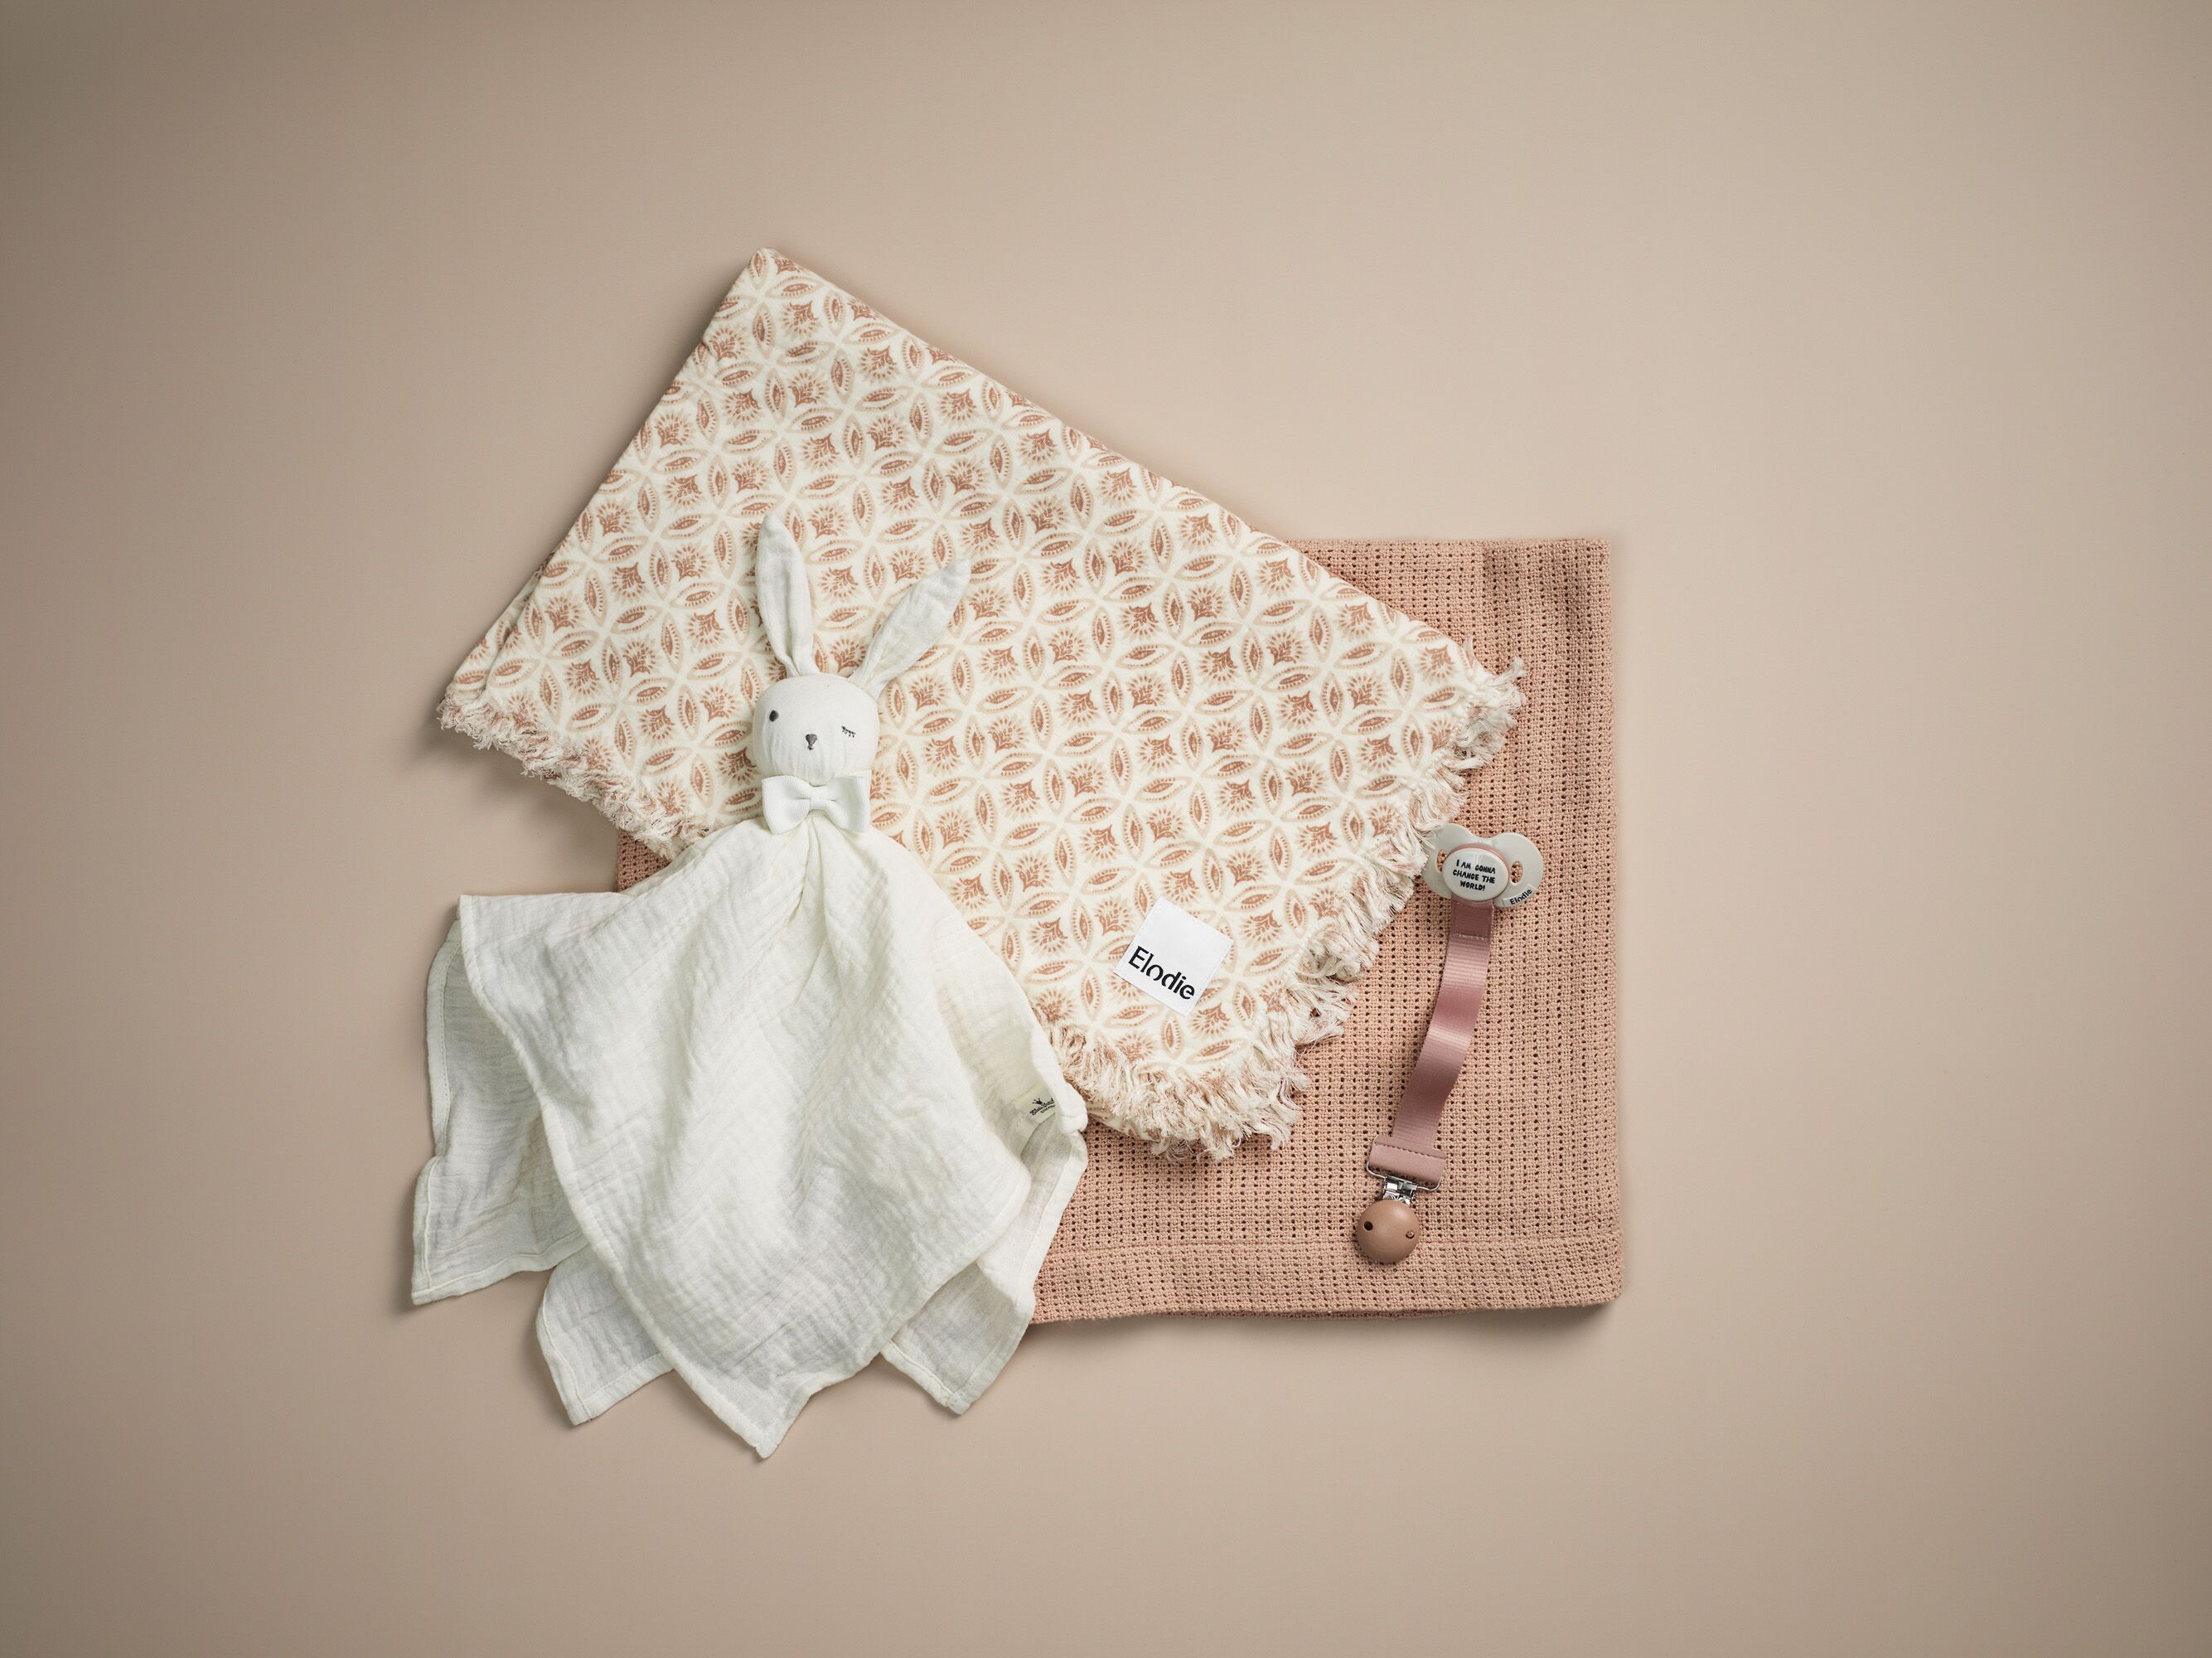 elodie-details-snutte-filt-ss-20-faded-rose-linkoping-brandsforkids.jpeg